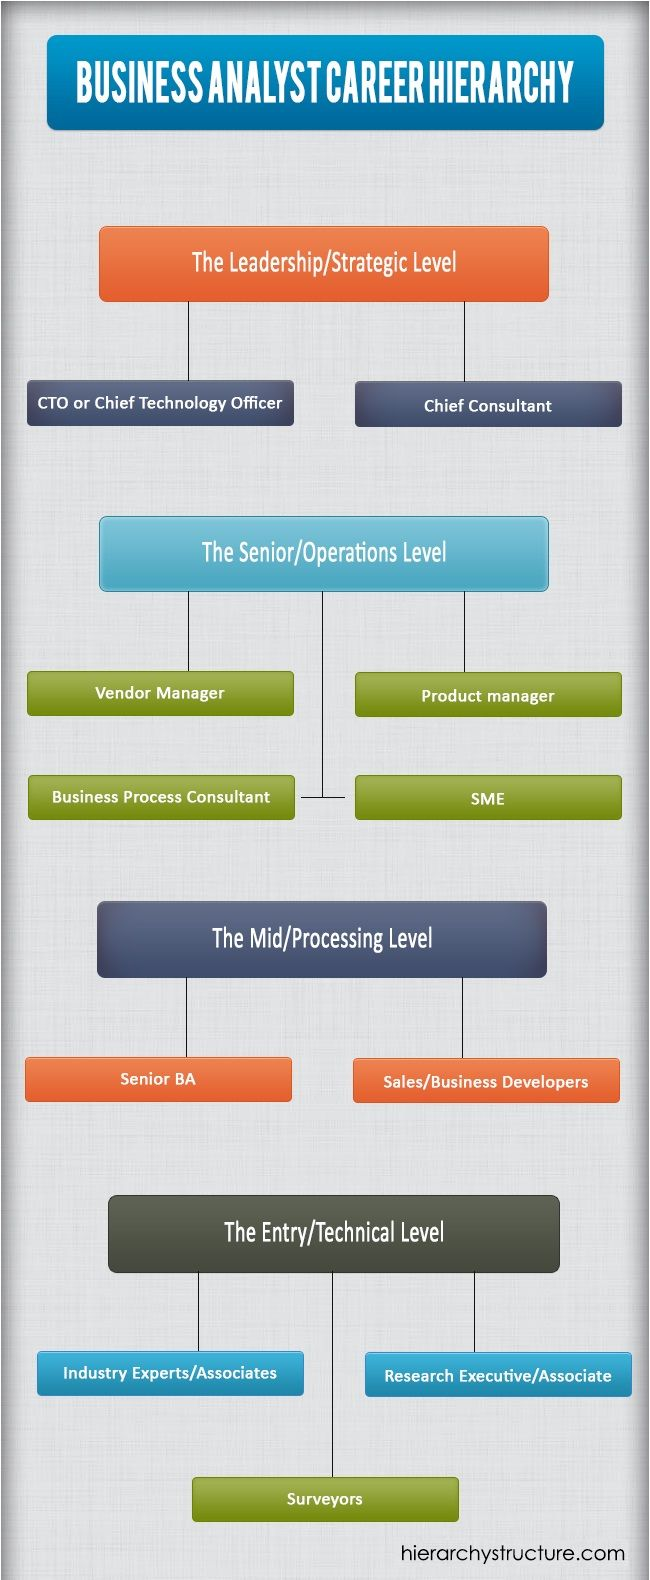 Business Analyst Career Hierarchy Business Hierarchy